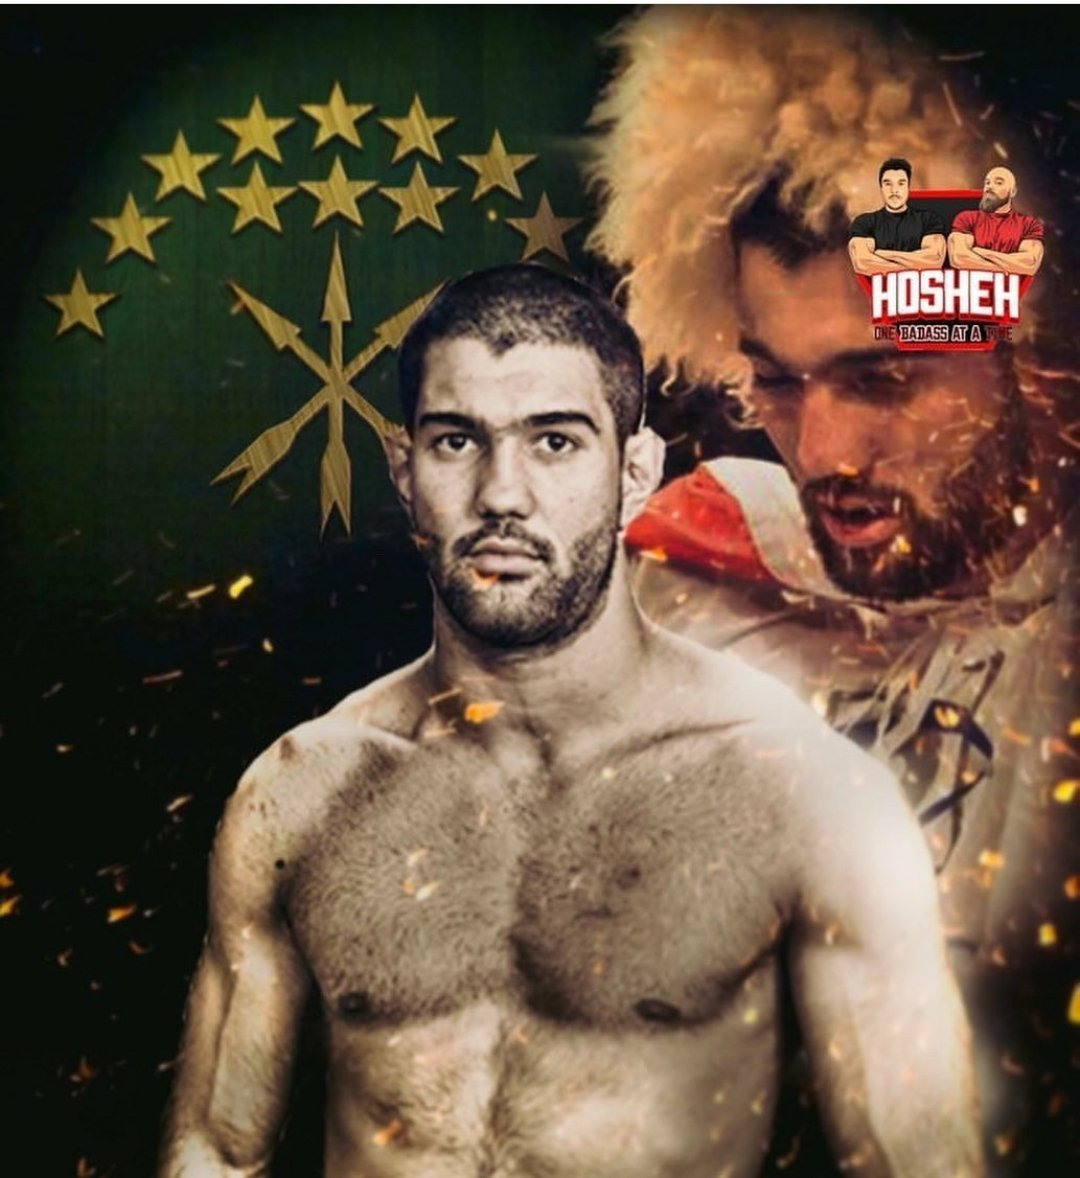 Very very hyped for our brother Hashem Arkhagha who fights on Dana Whites Contender Series tonight, as he tries to secure a spot in the UFC. He will be the first Circassian fighter (i believe) to do so, inshallah.  May Allah grant our brother the victory, Ameen